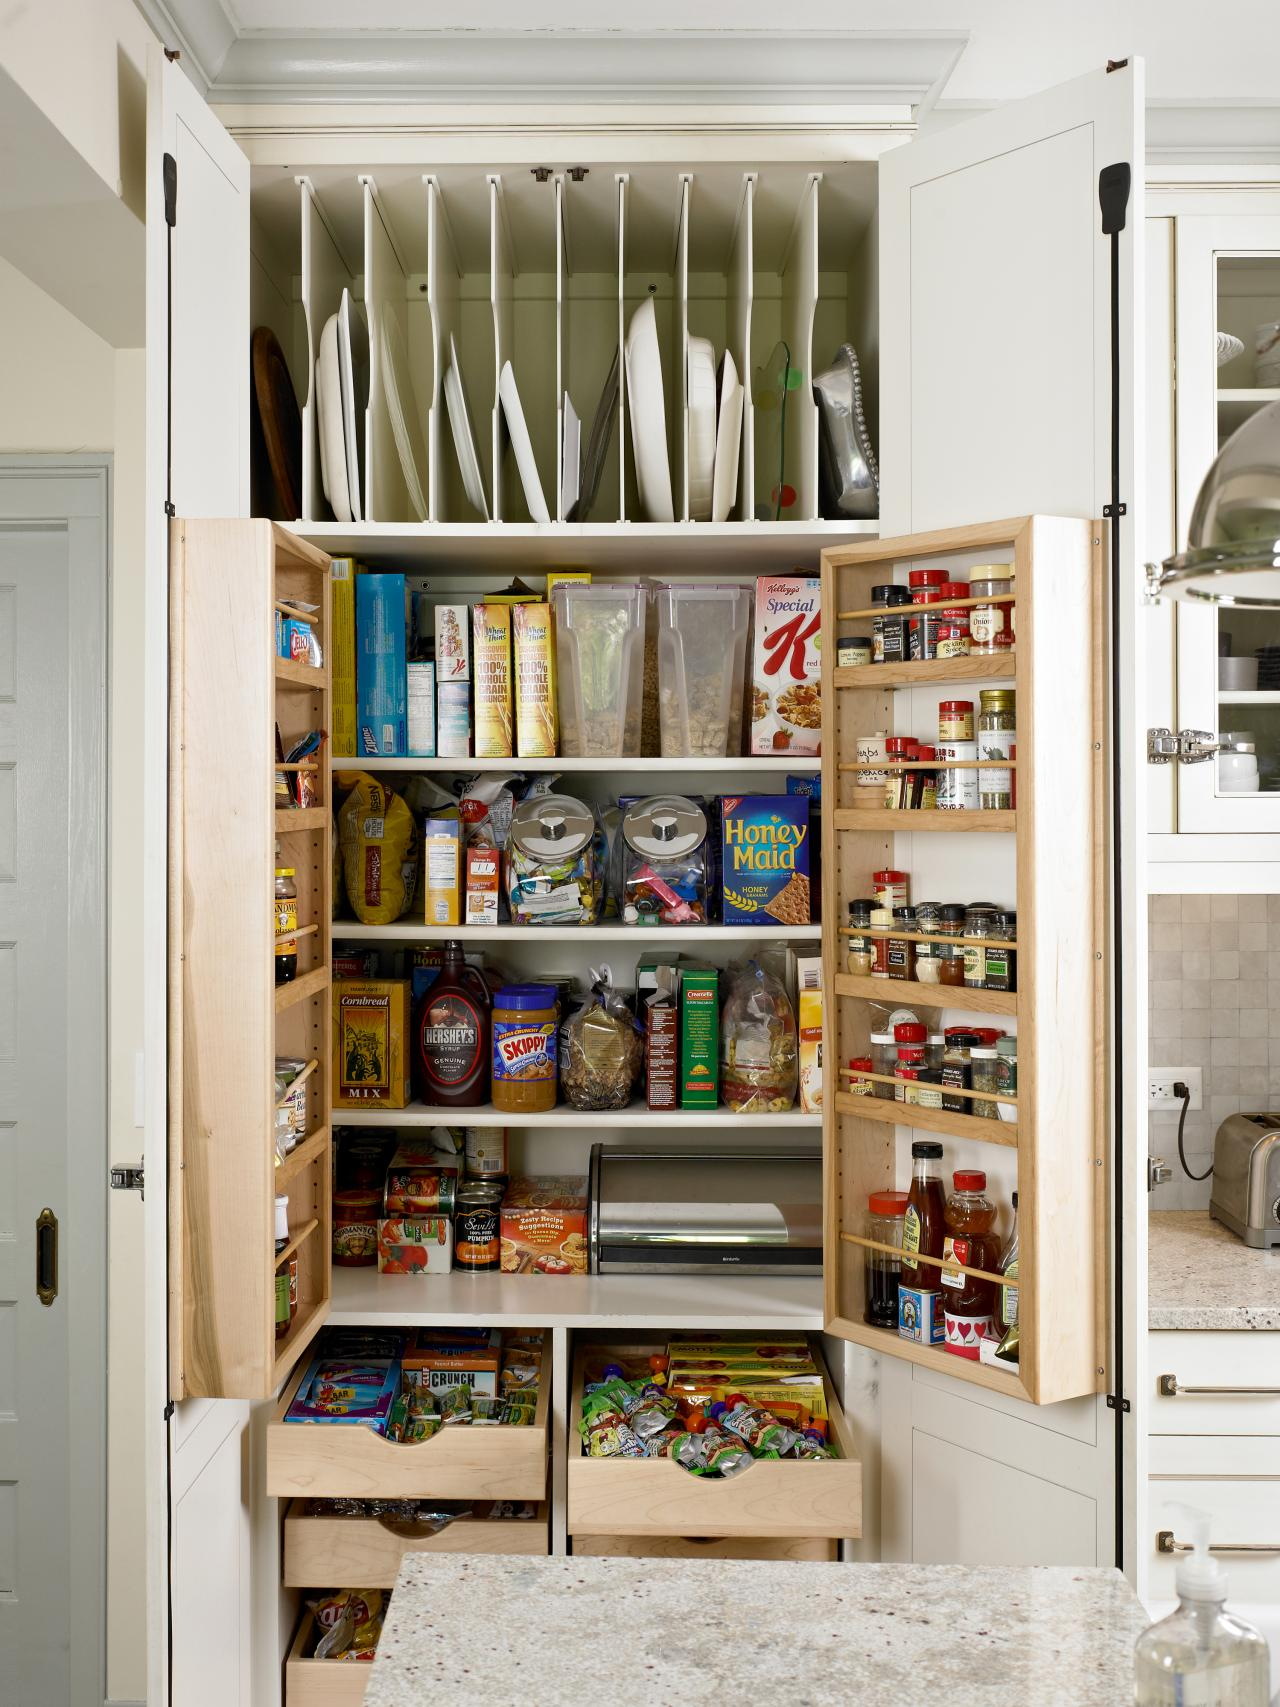 small kitchen storage ideas pictures amp tips from hgtv hgtv